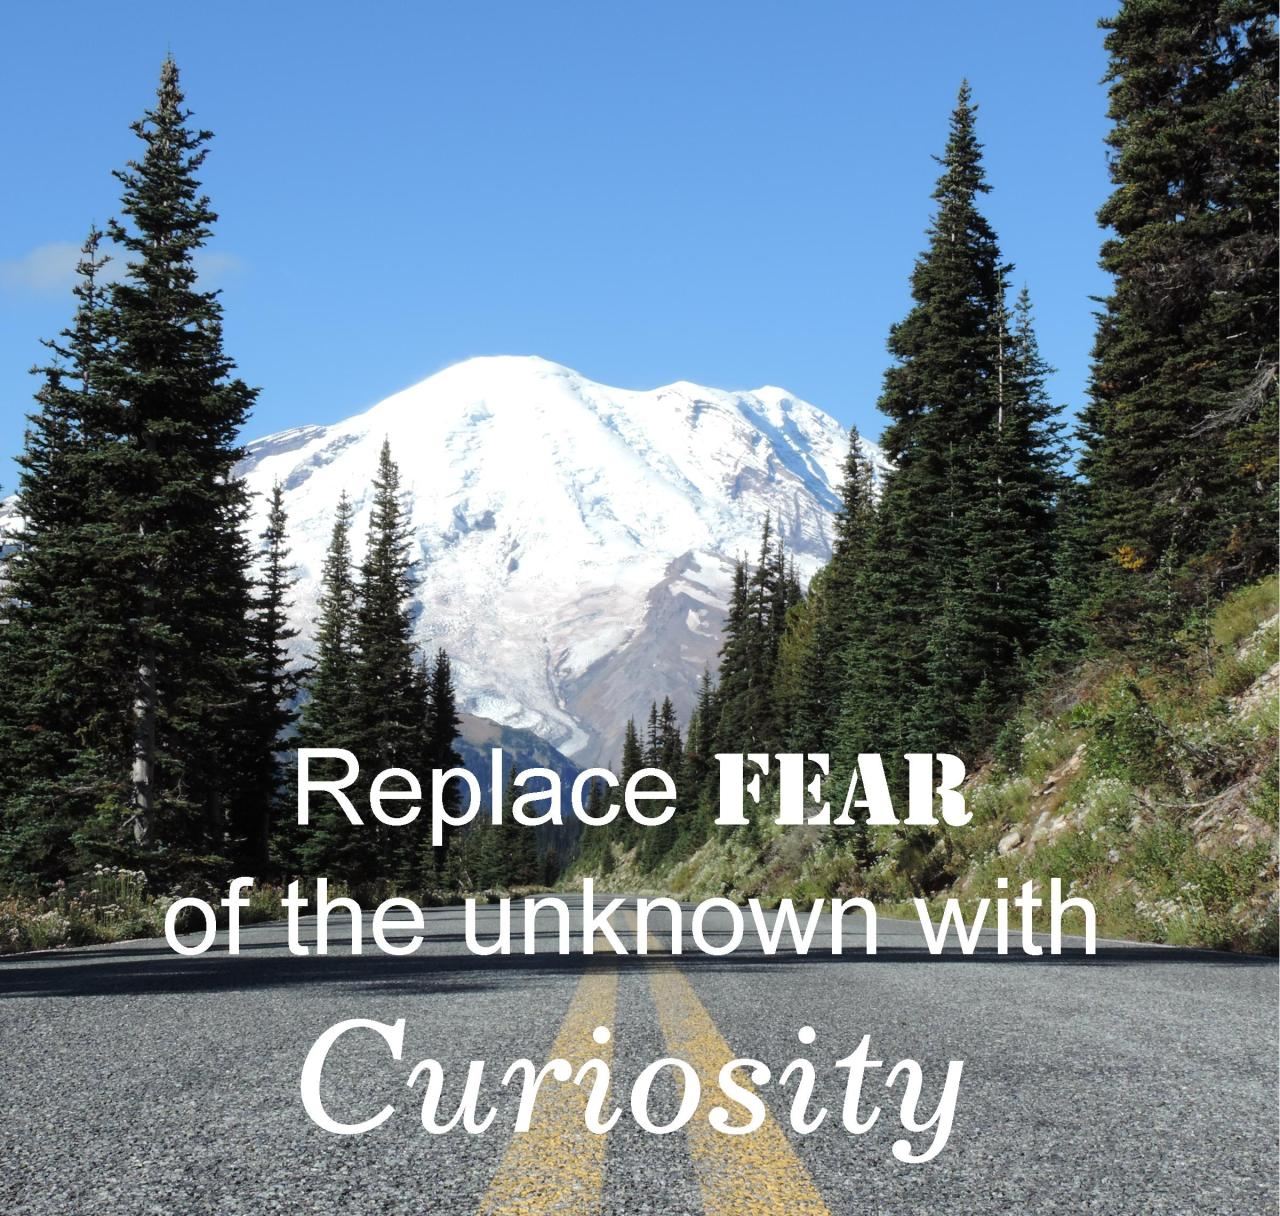 Replace #Fear with #Curiosity